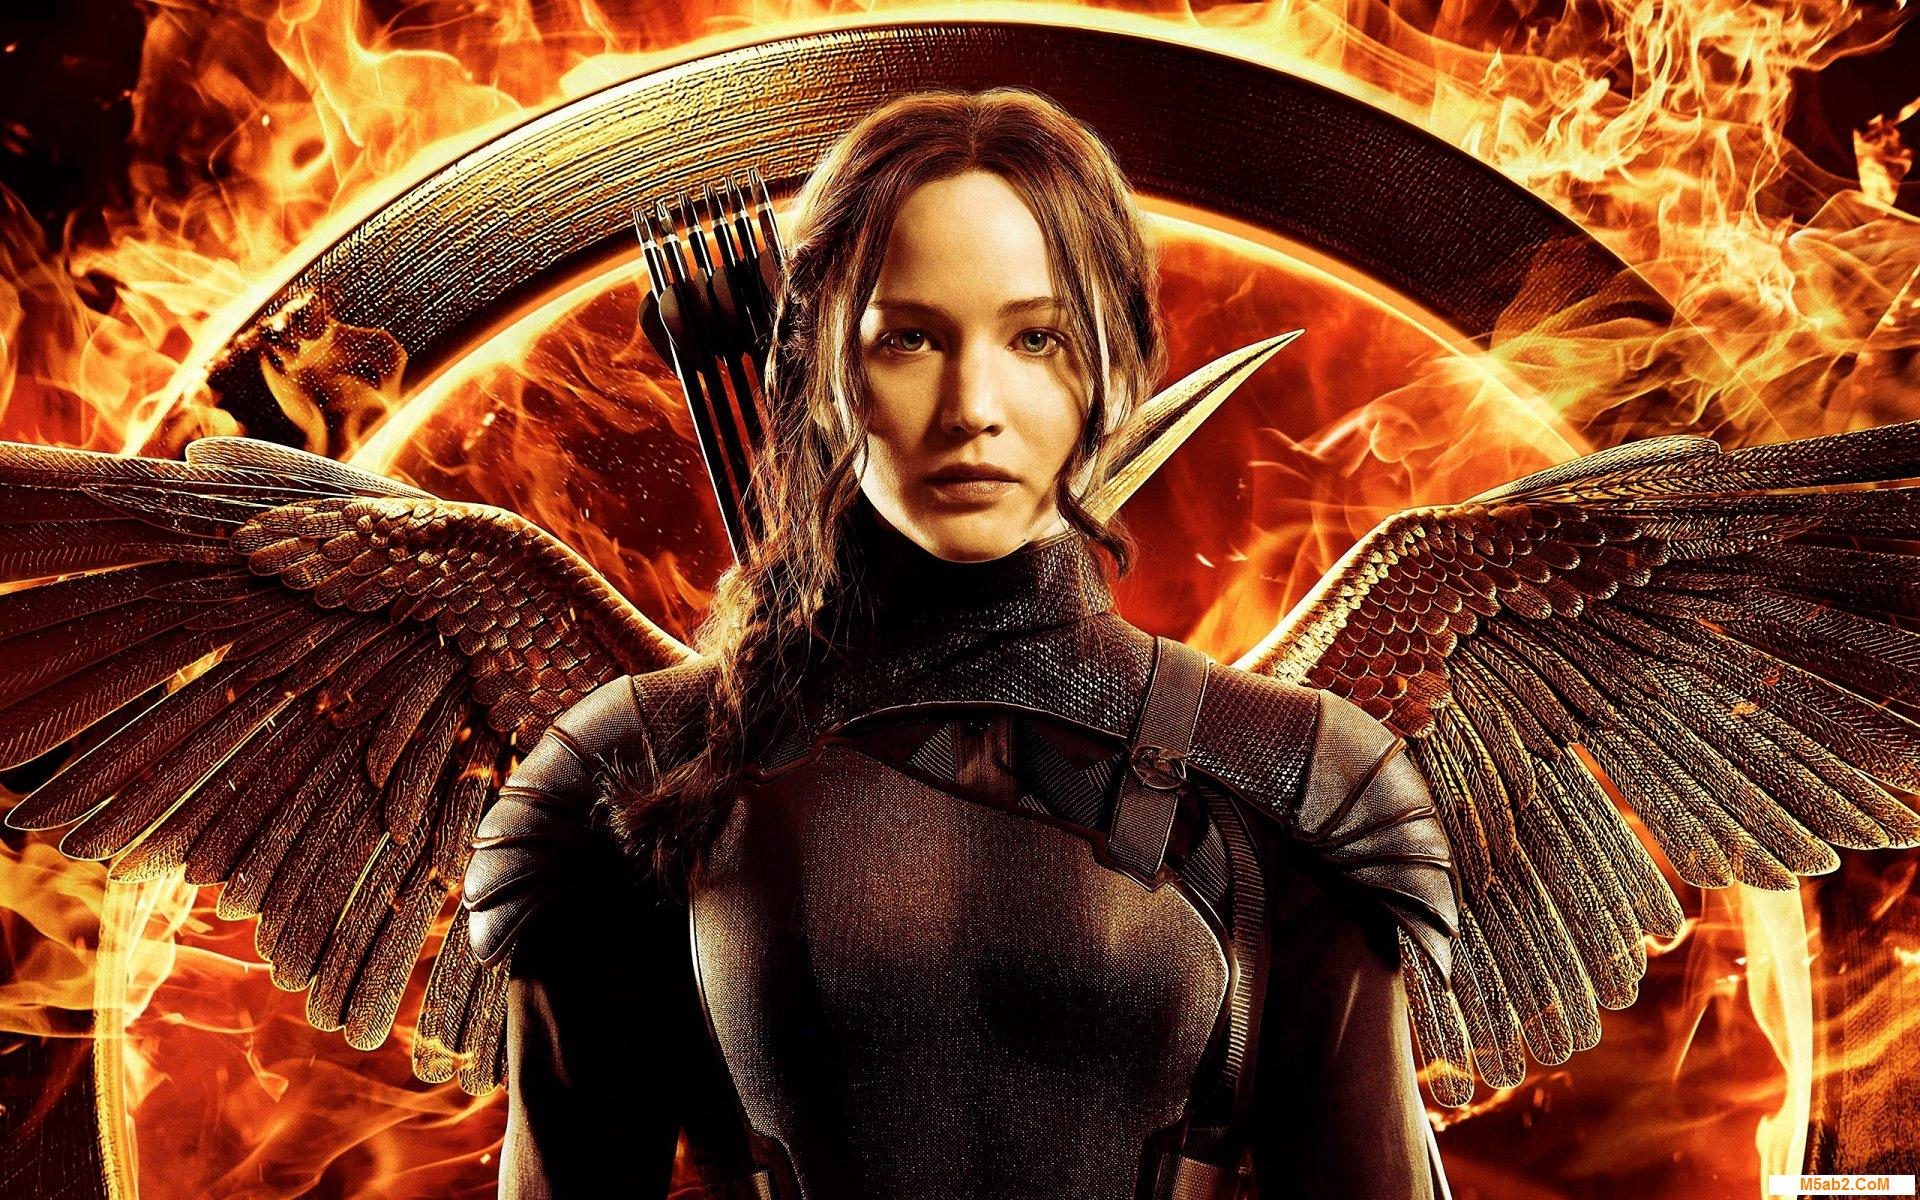 ������ ���� The Hunger Games: Mockingjay, Part 2 ���� �������� ��� �� ��� ������